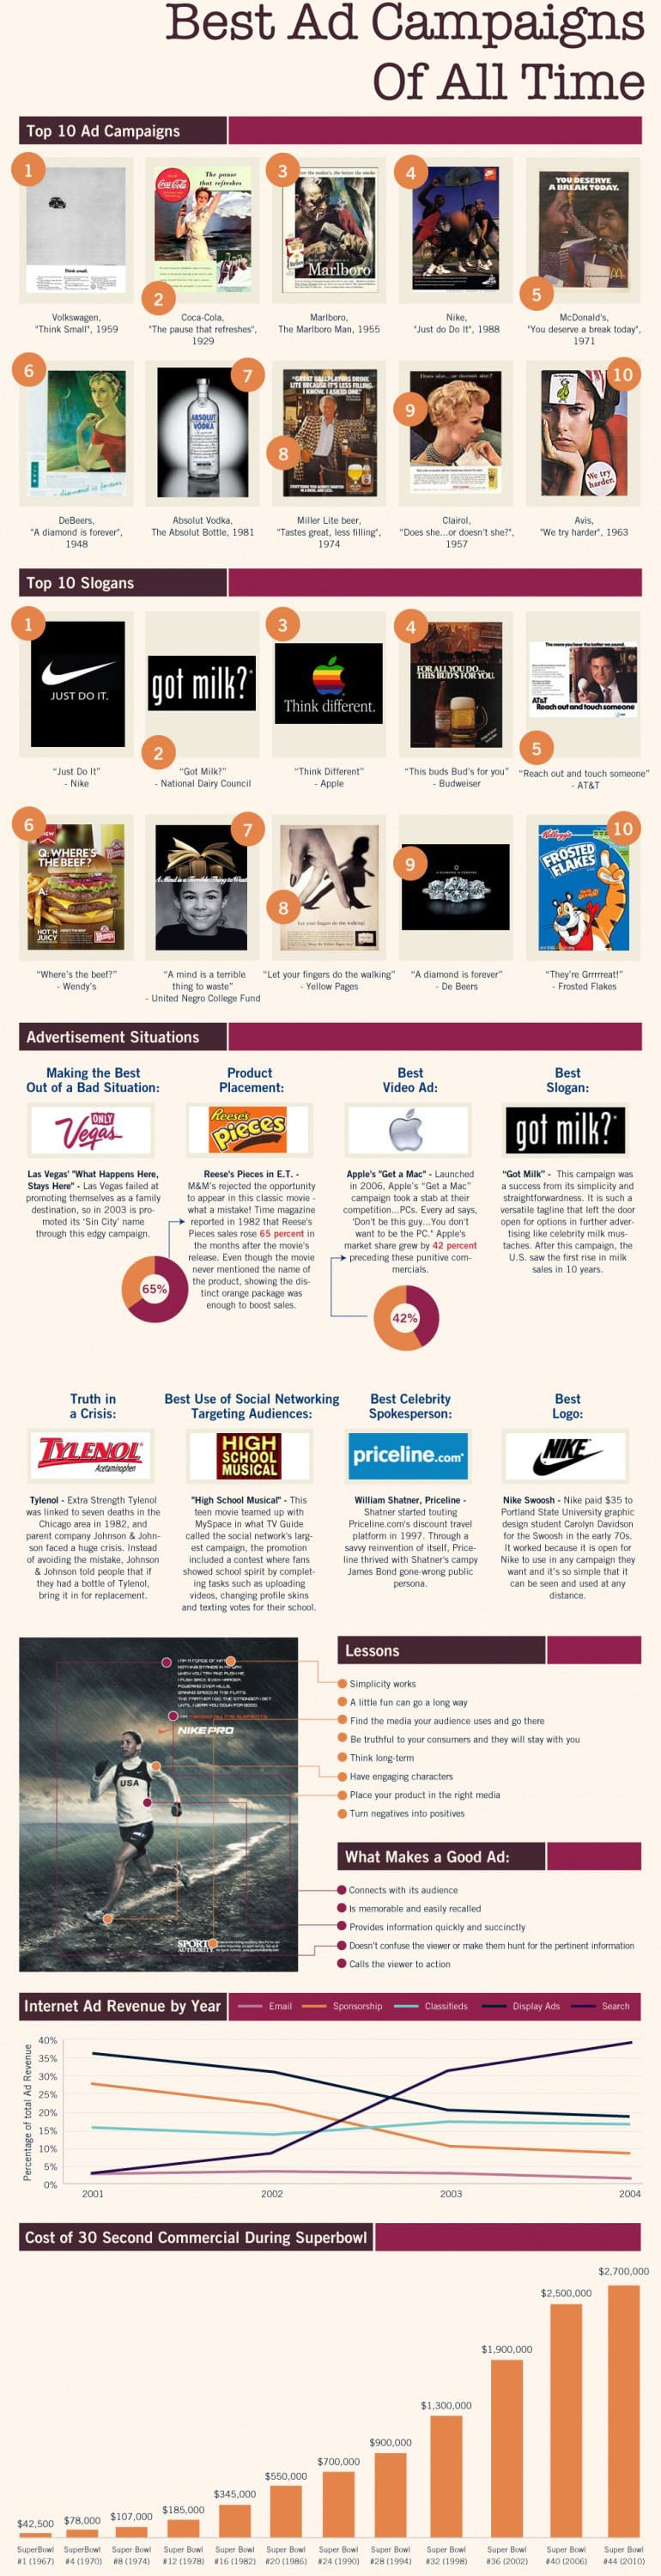 best-ad-campaigns-slogans-infographic